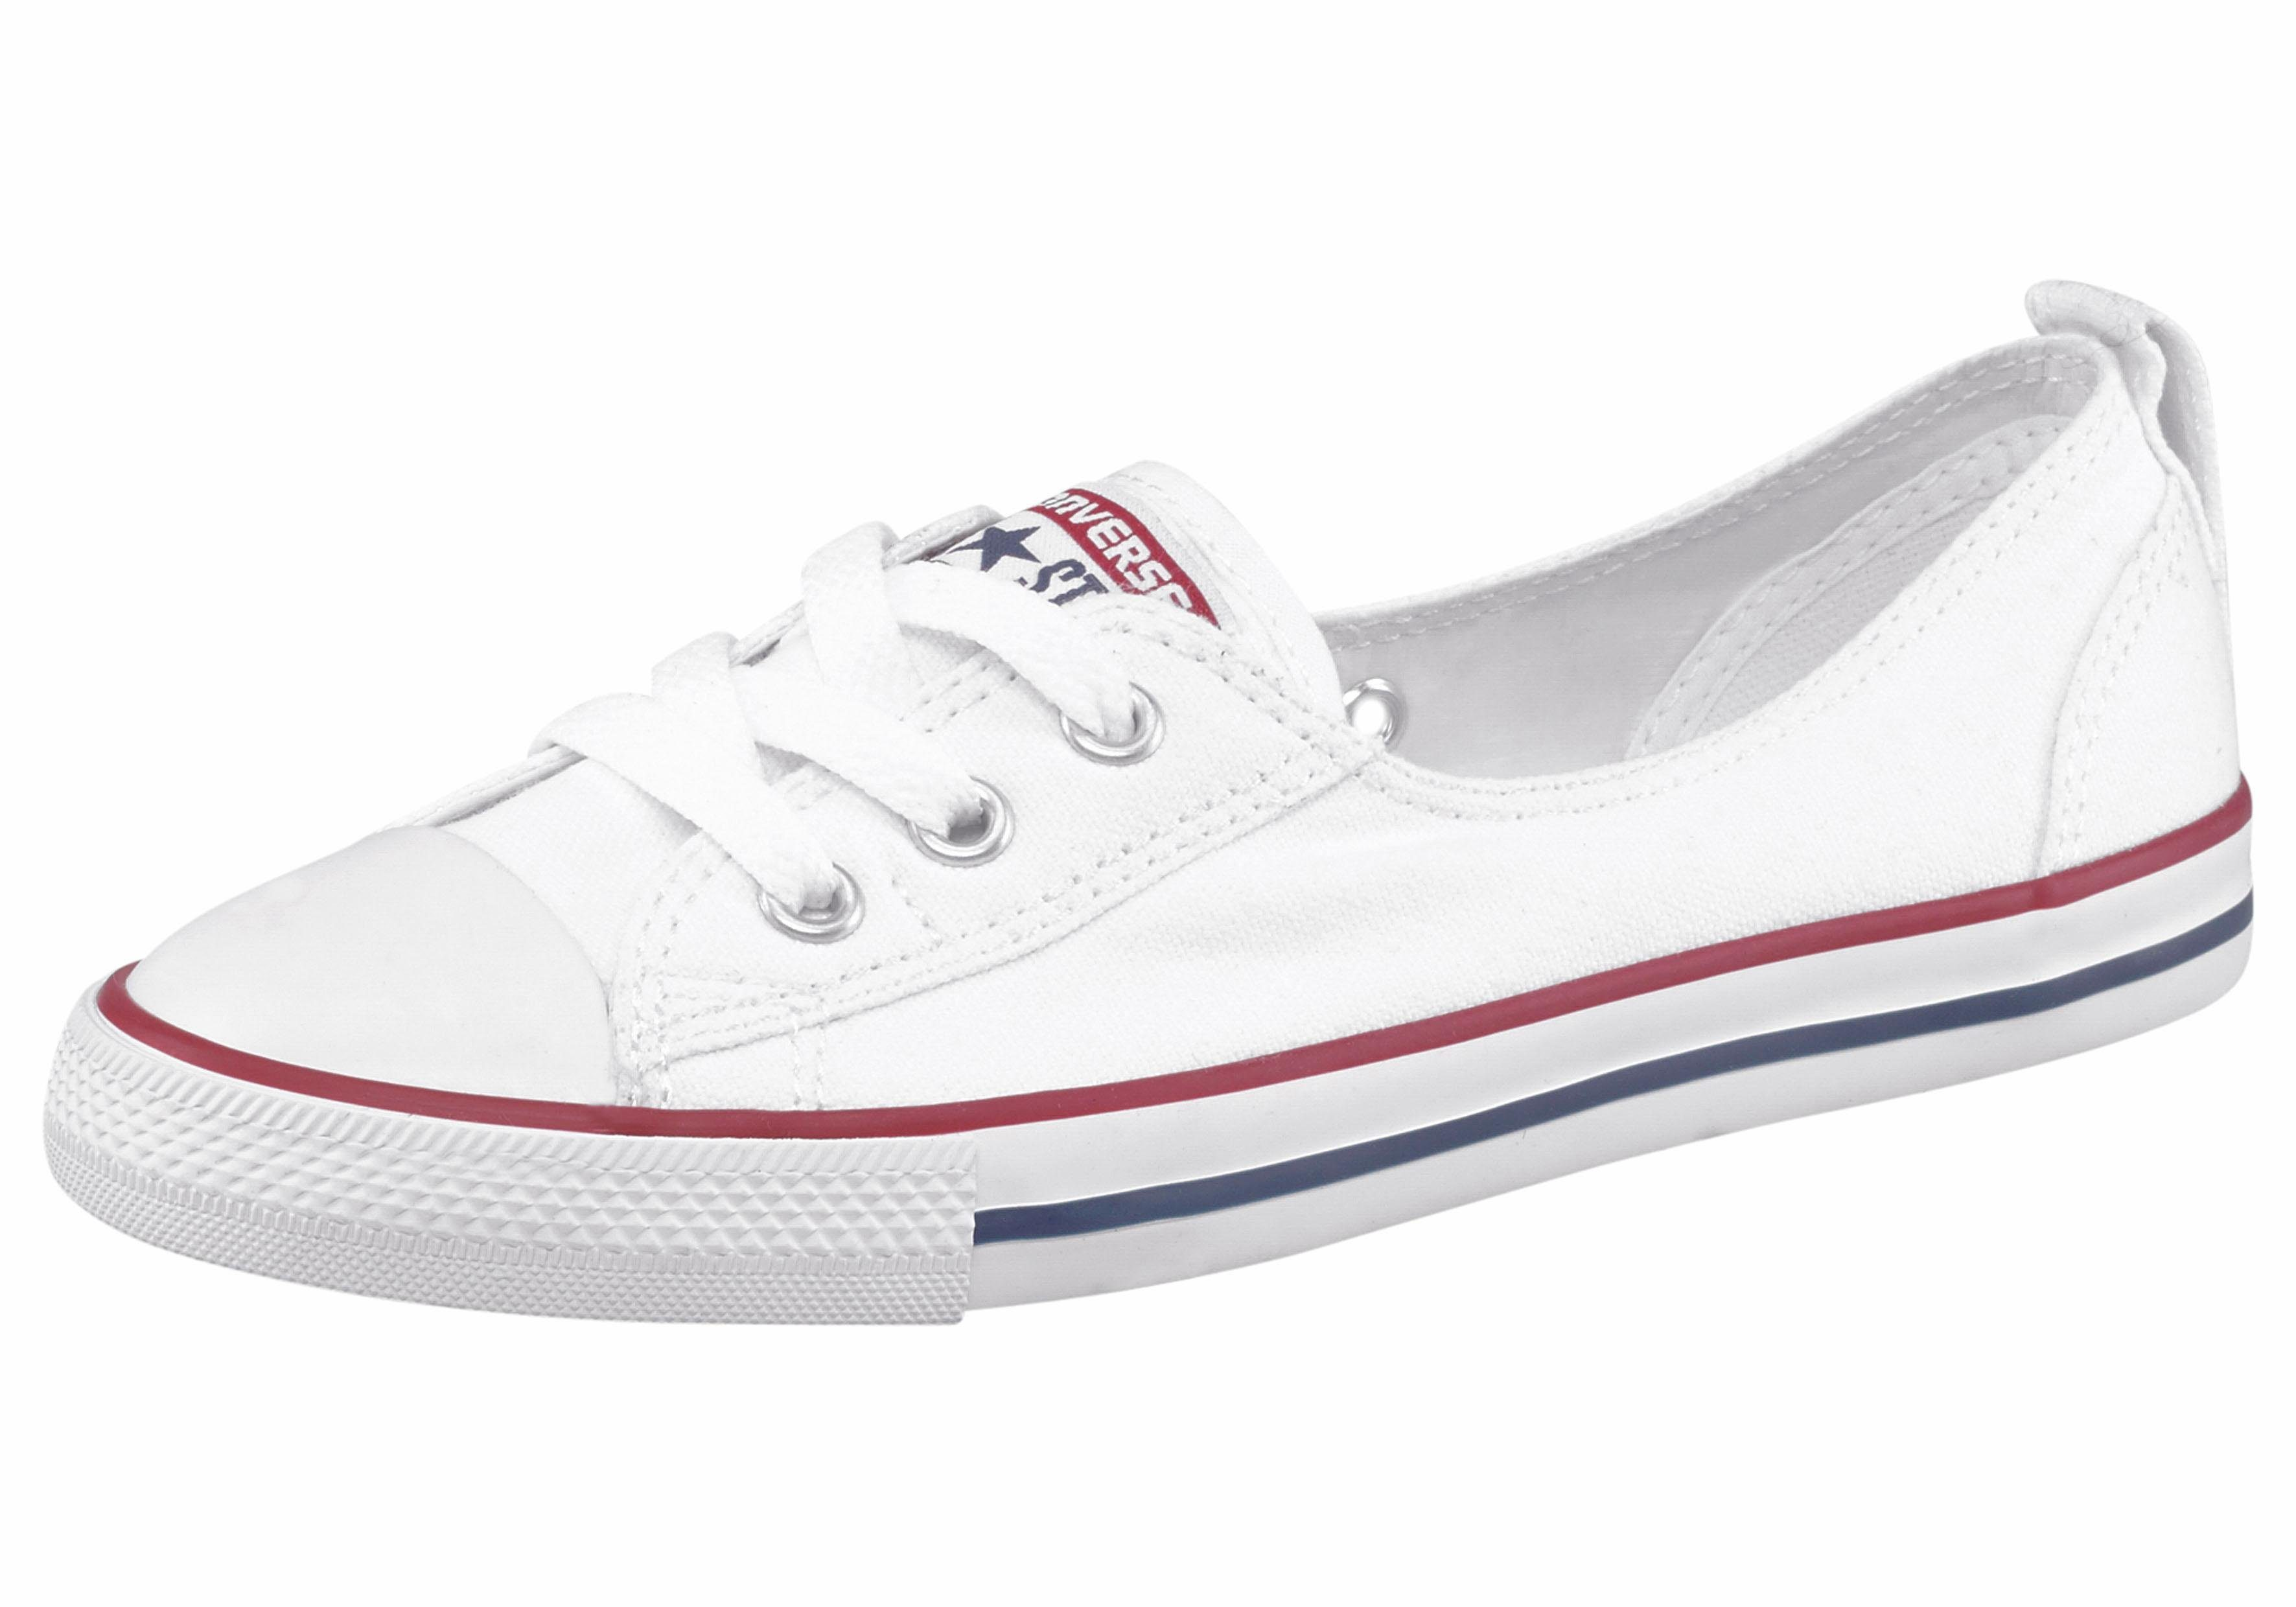 Converse »Chuck Taylor All Star Ballet Lace Ox« Sneaker online kaufen   OTTO